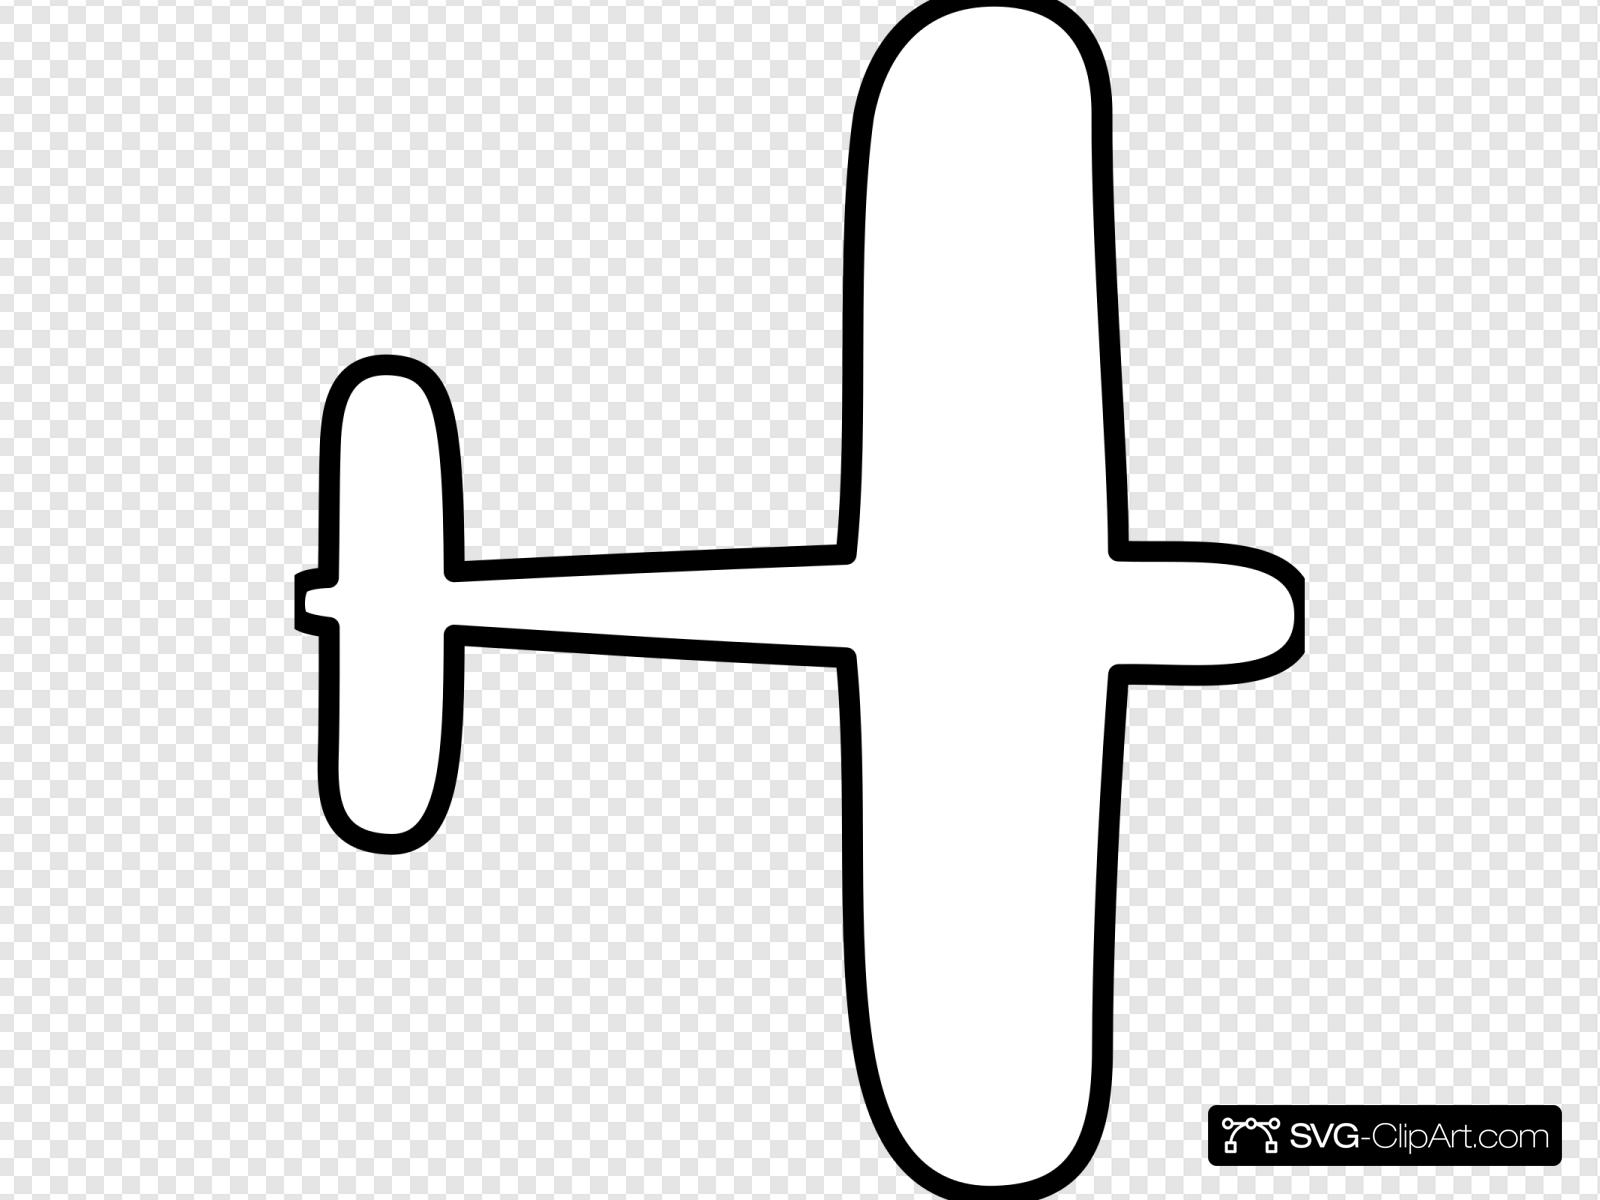 Airplane Outline Svg Vector Airplane Outline Clip Art Svg Clipart